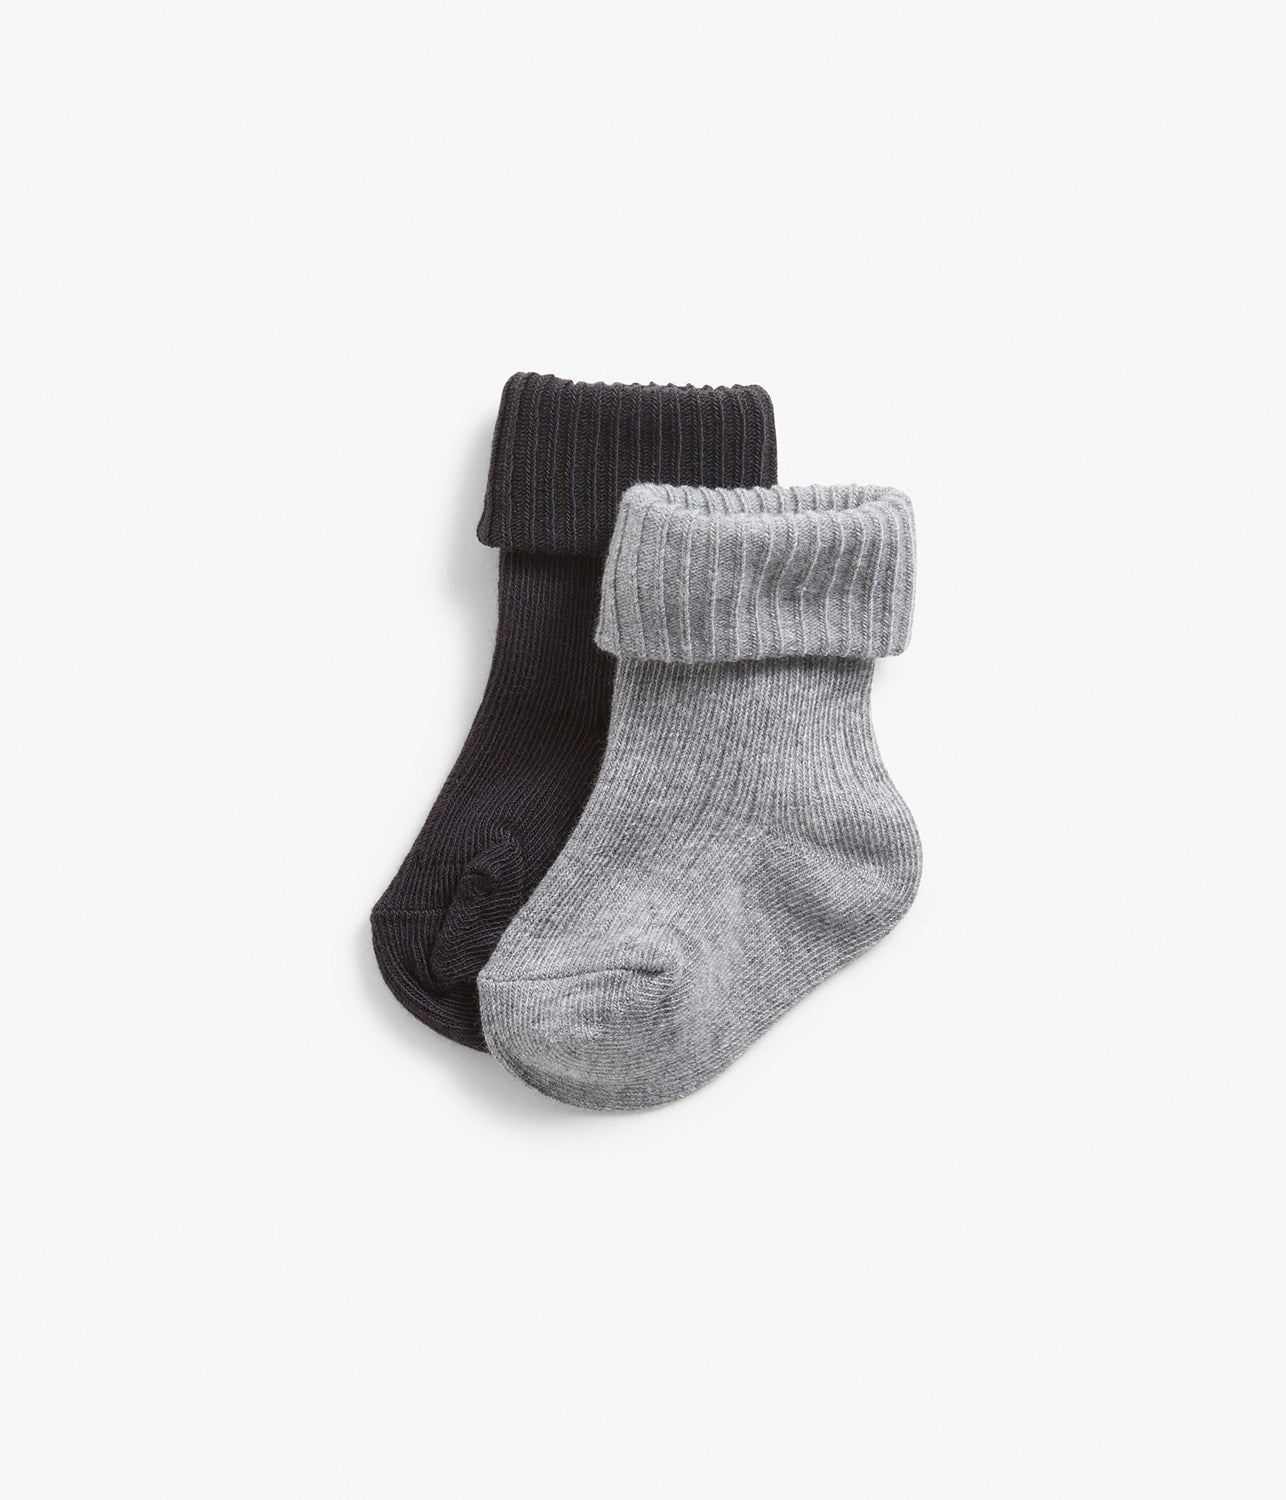 Baby black & grey ribbed socks with folded cuffs